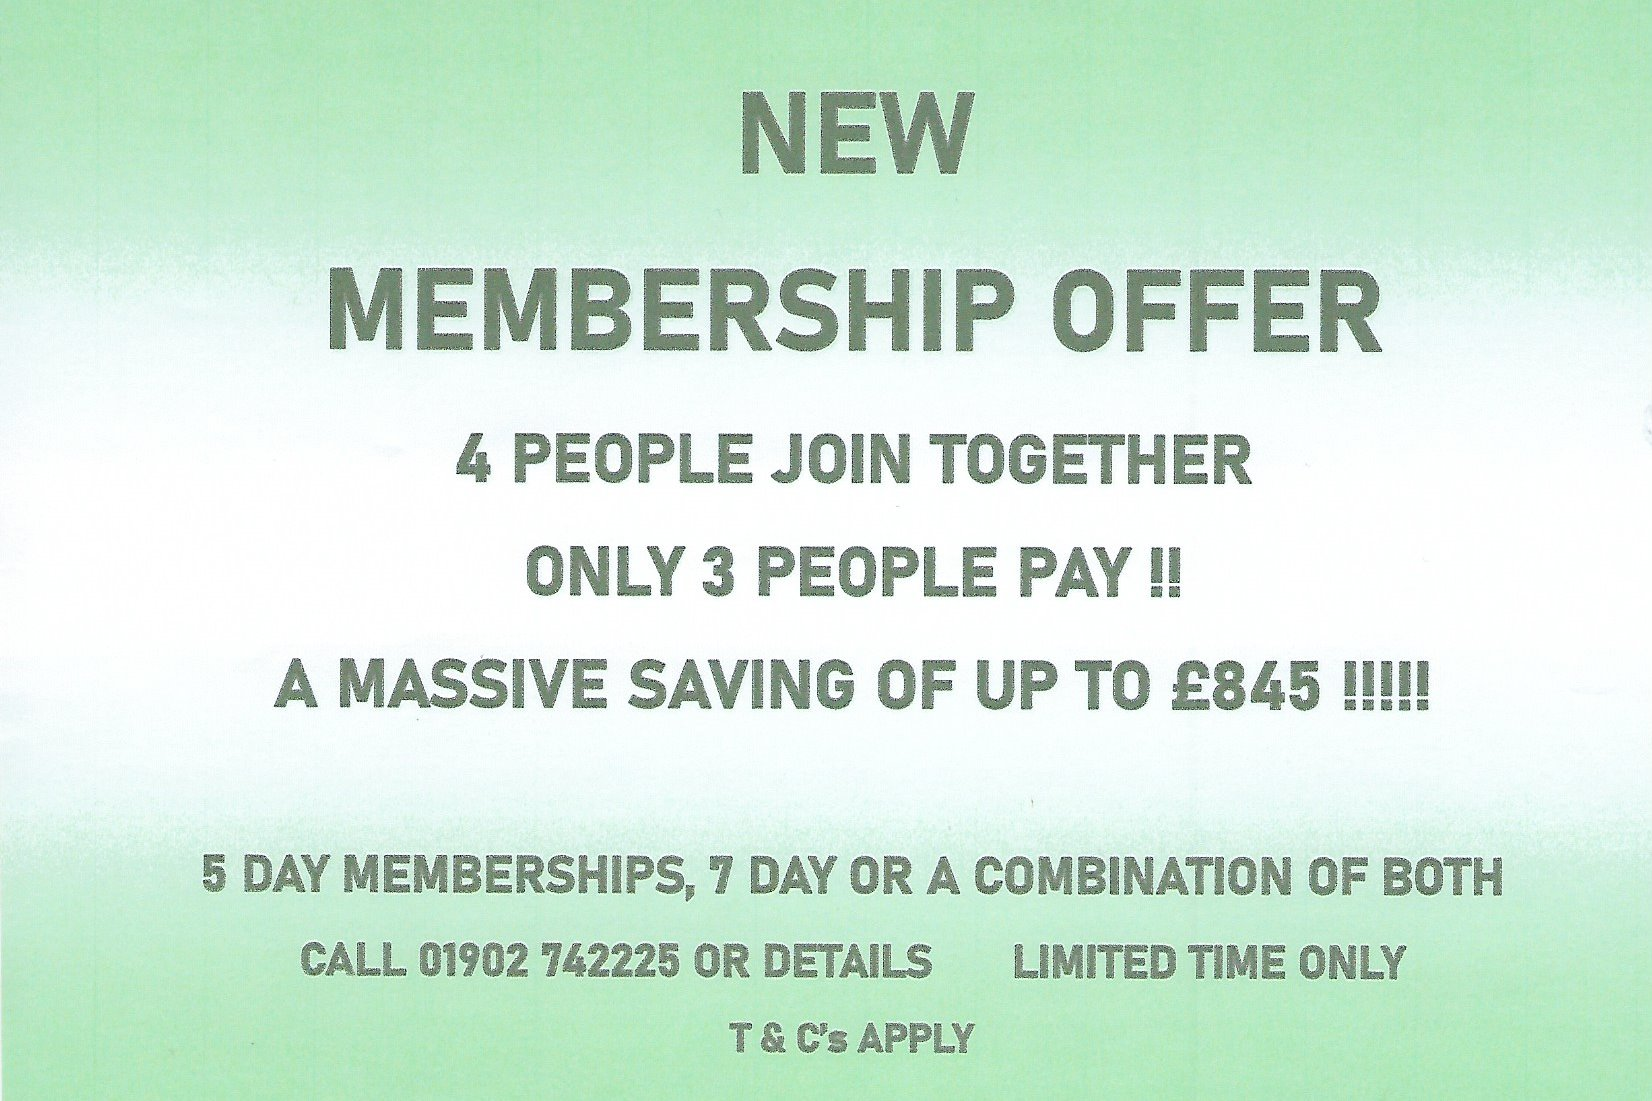 25% OFF YOUR MEMBERSHIP